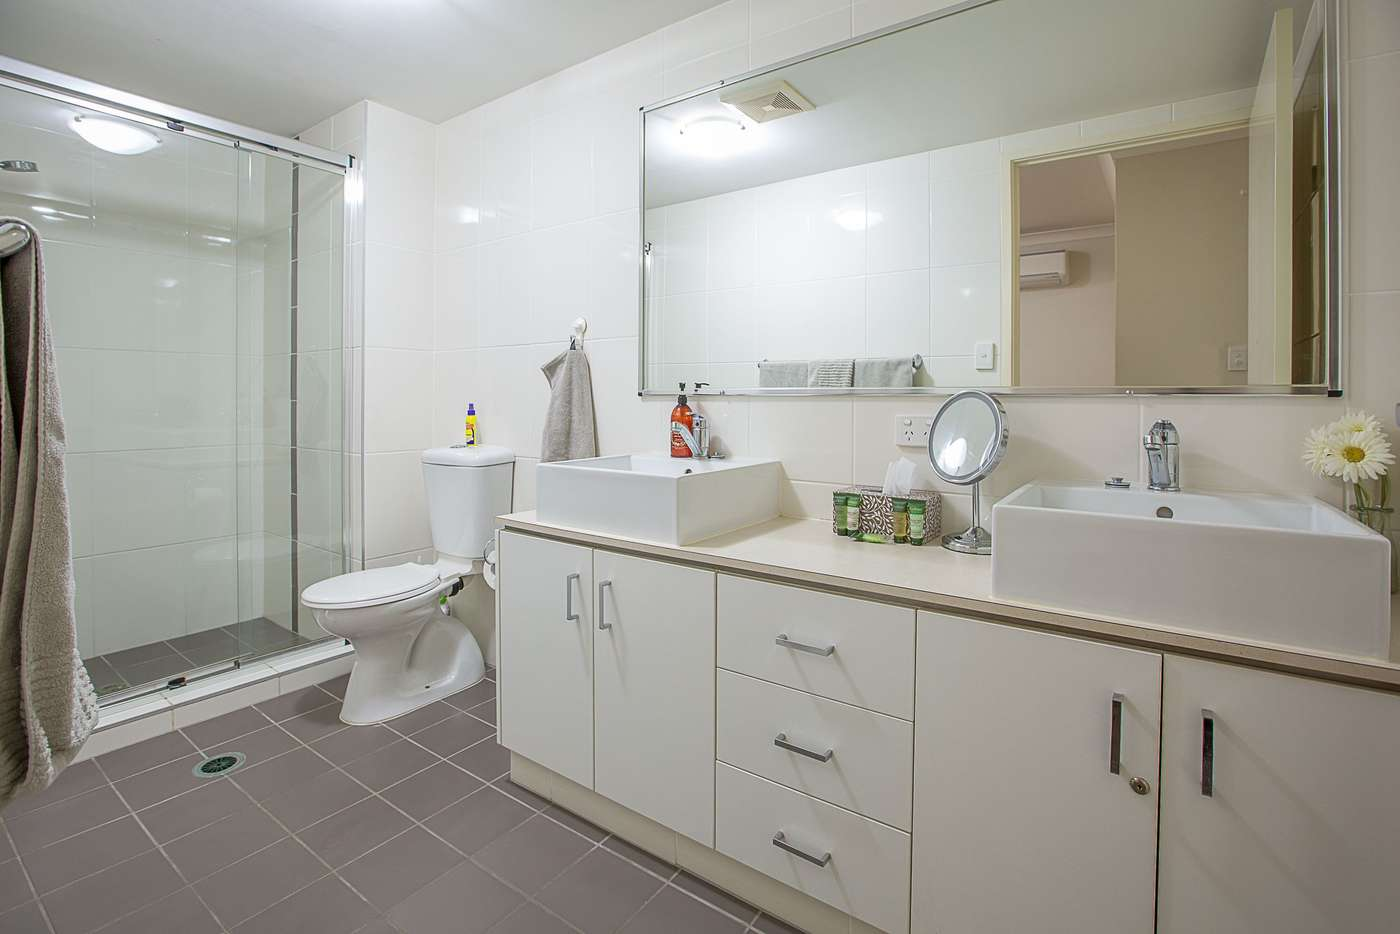 Sixth view of Homely apartment listing, 5/8 Proud Street, Labrador QLD 4215